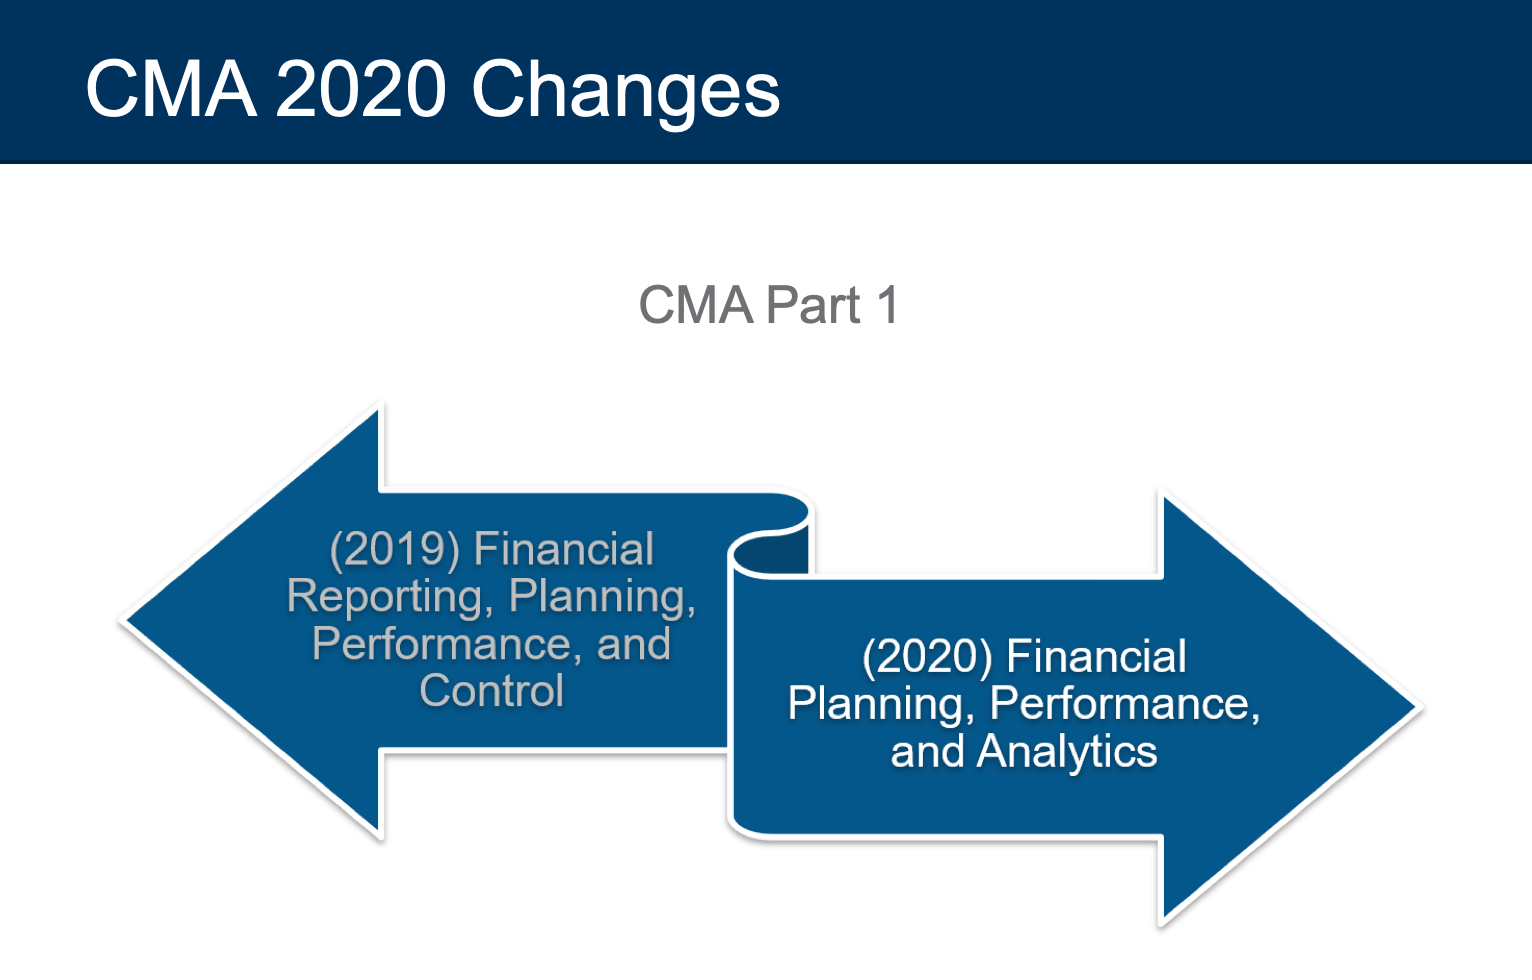 cma exam changes 2020 part 1